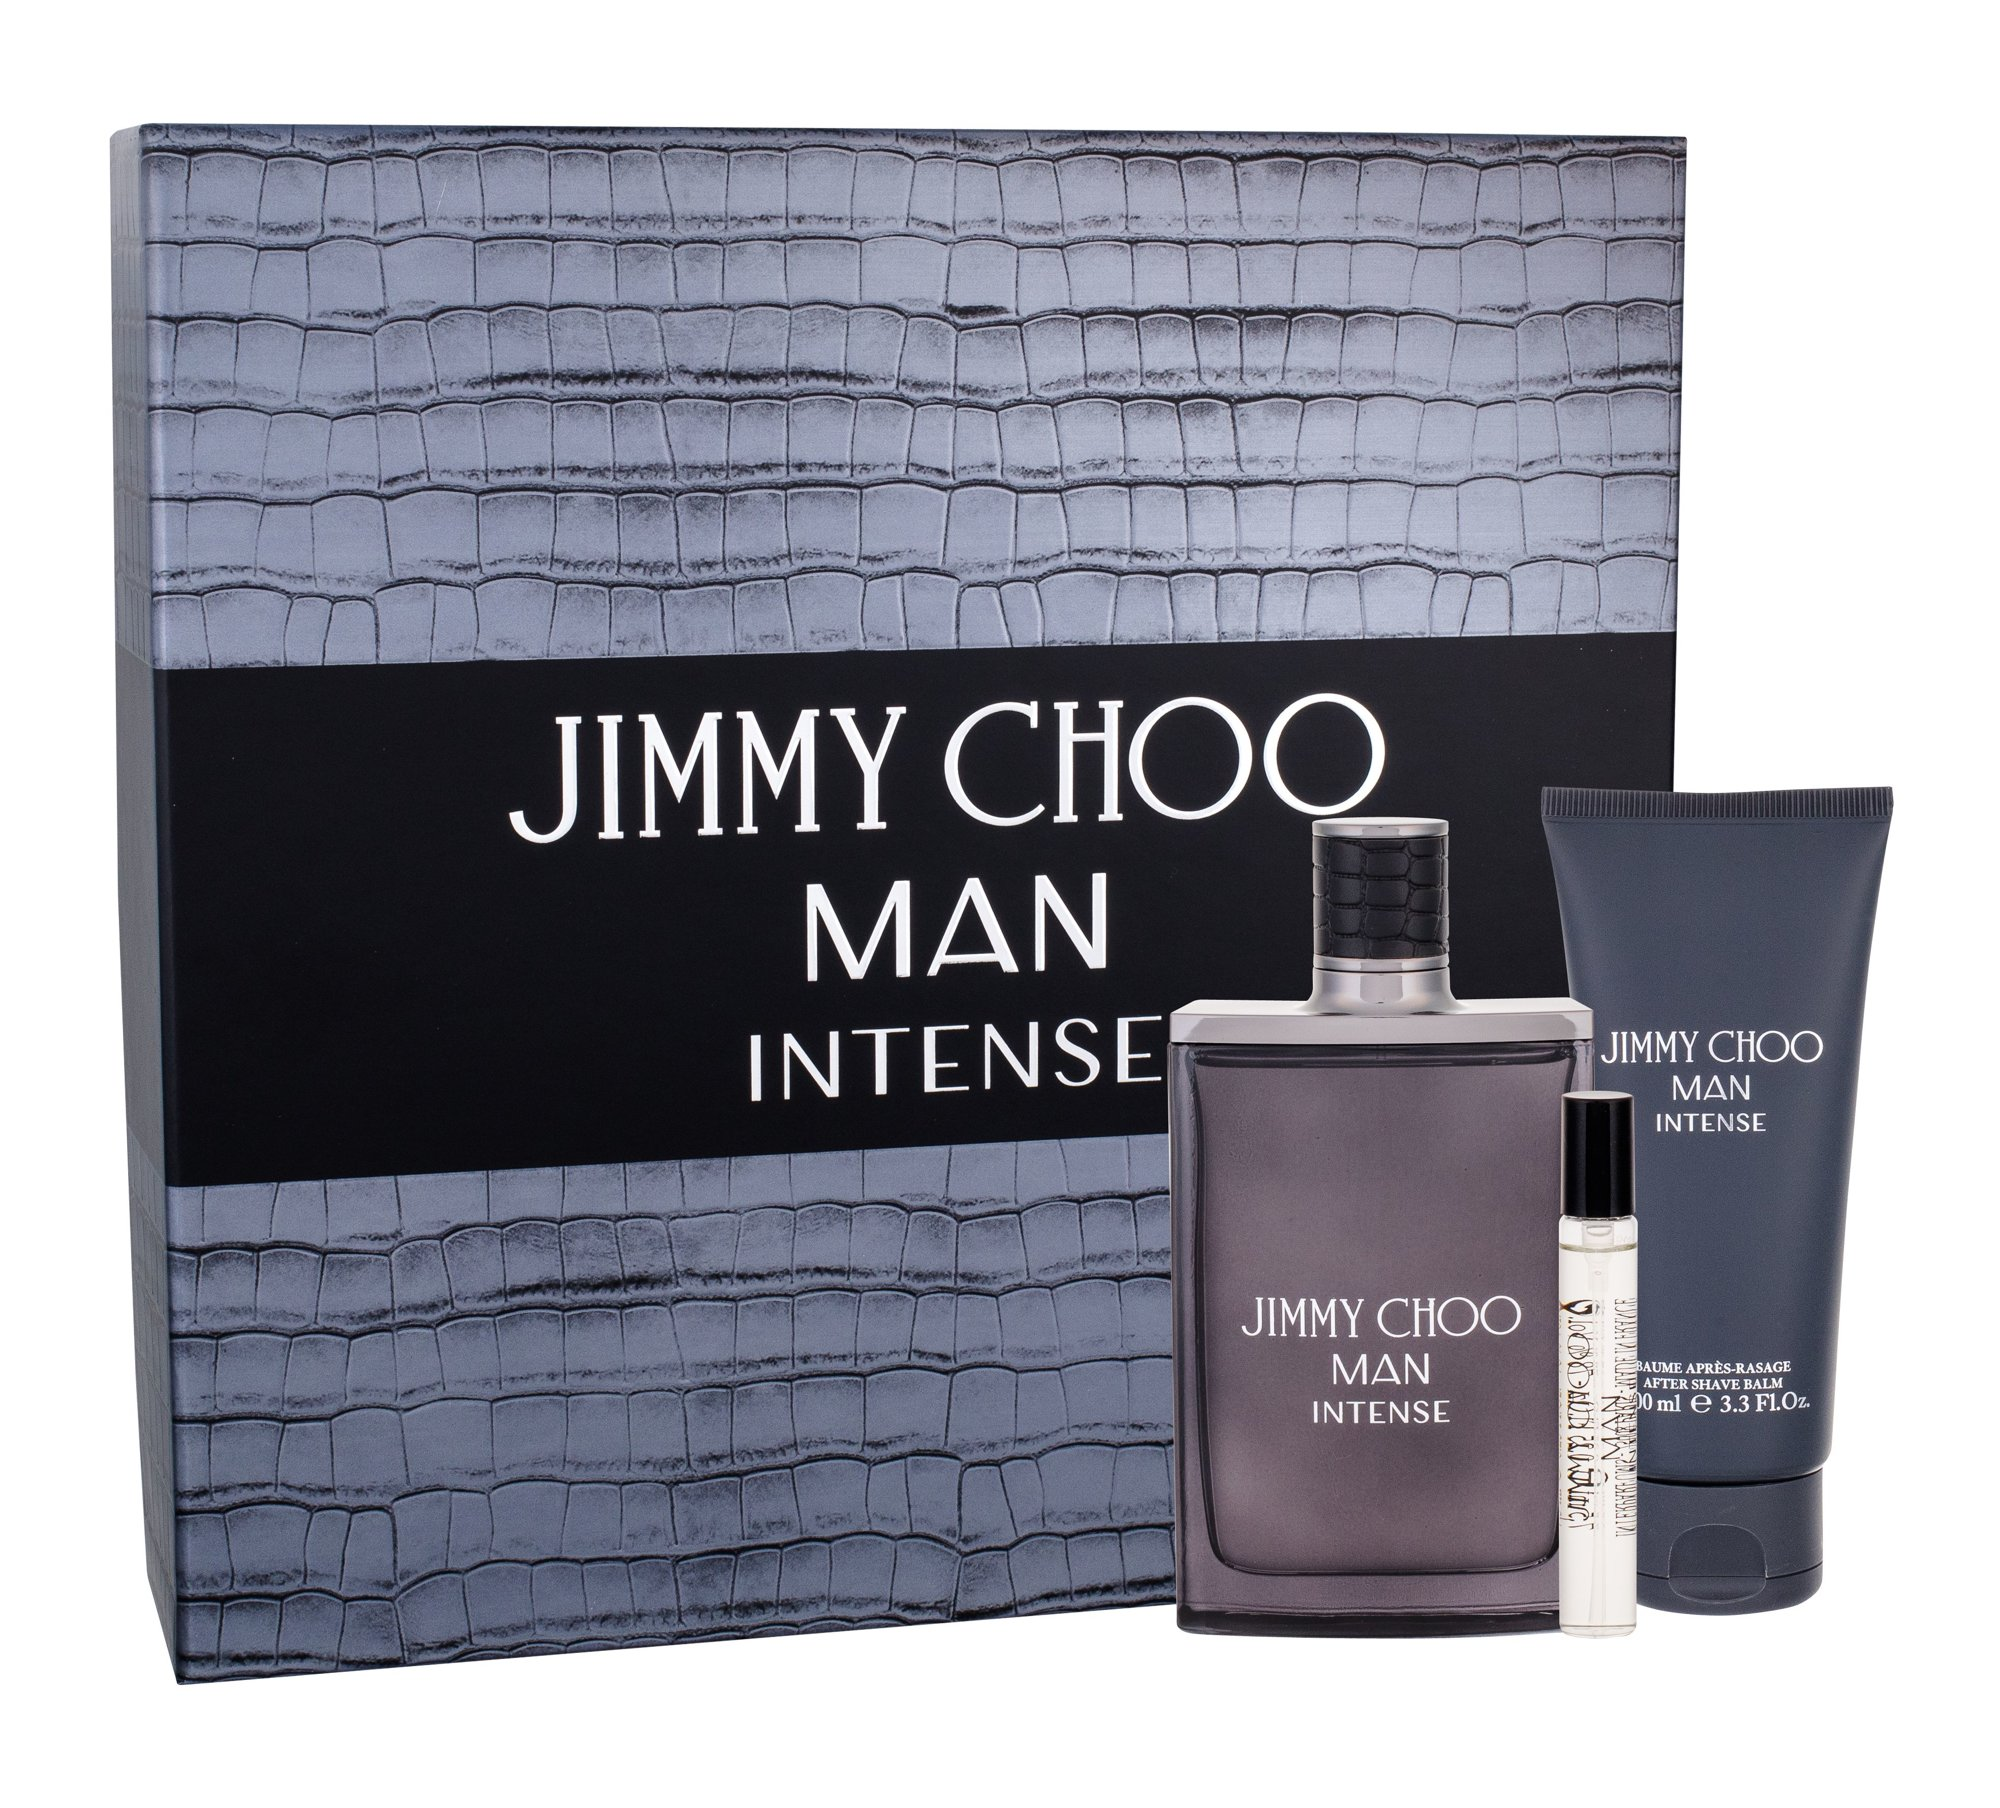 Jimmy Choo Jimmy Choo Man Intense Eau de Toilette 100ml